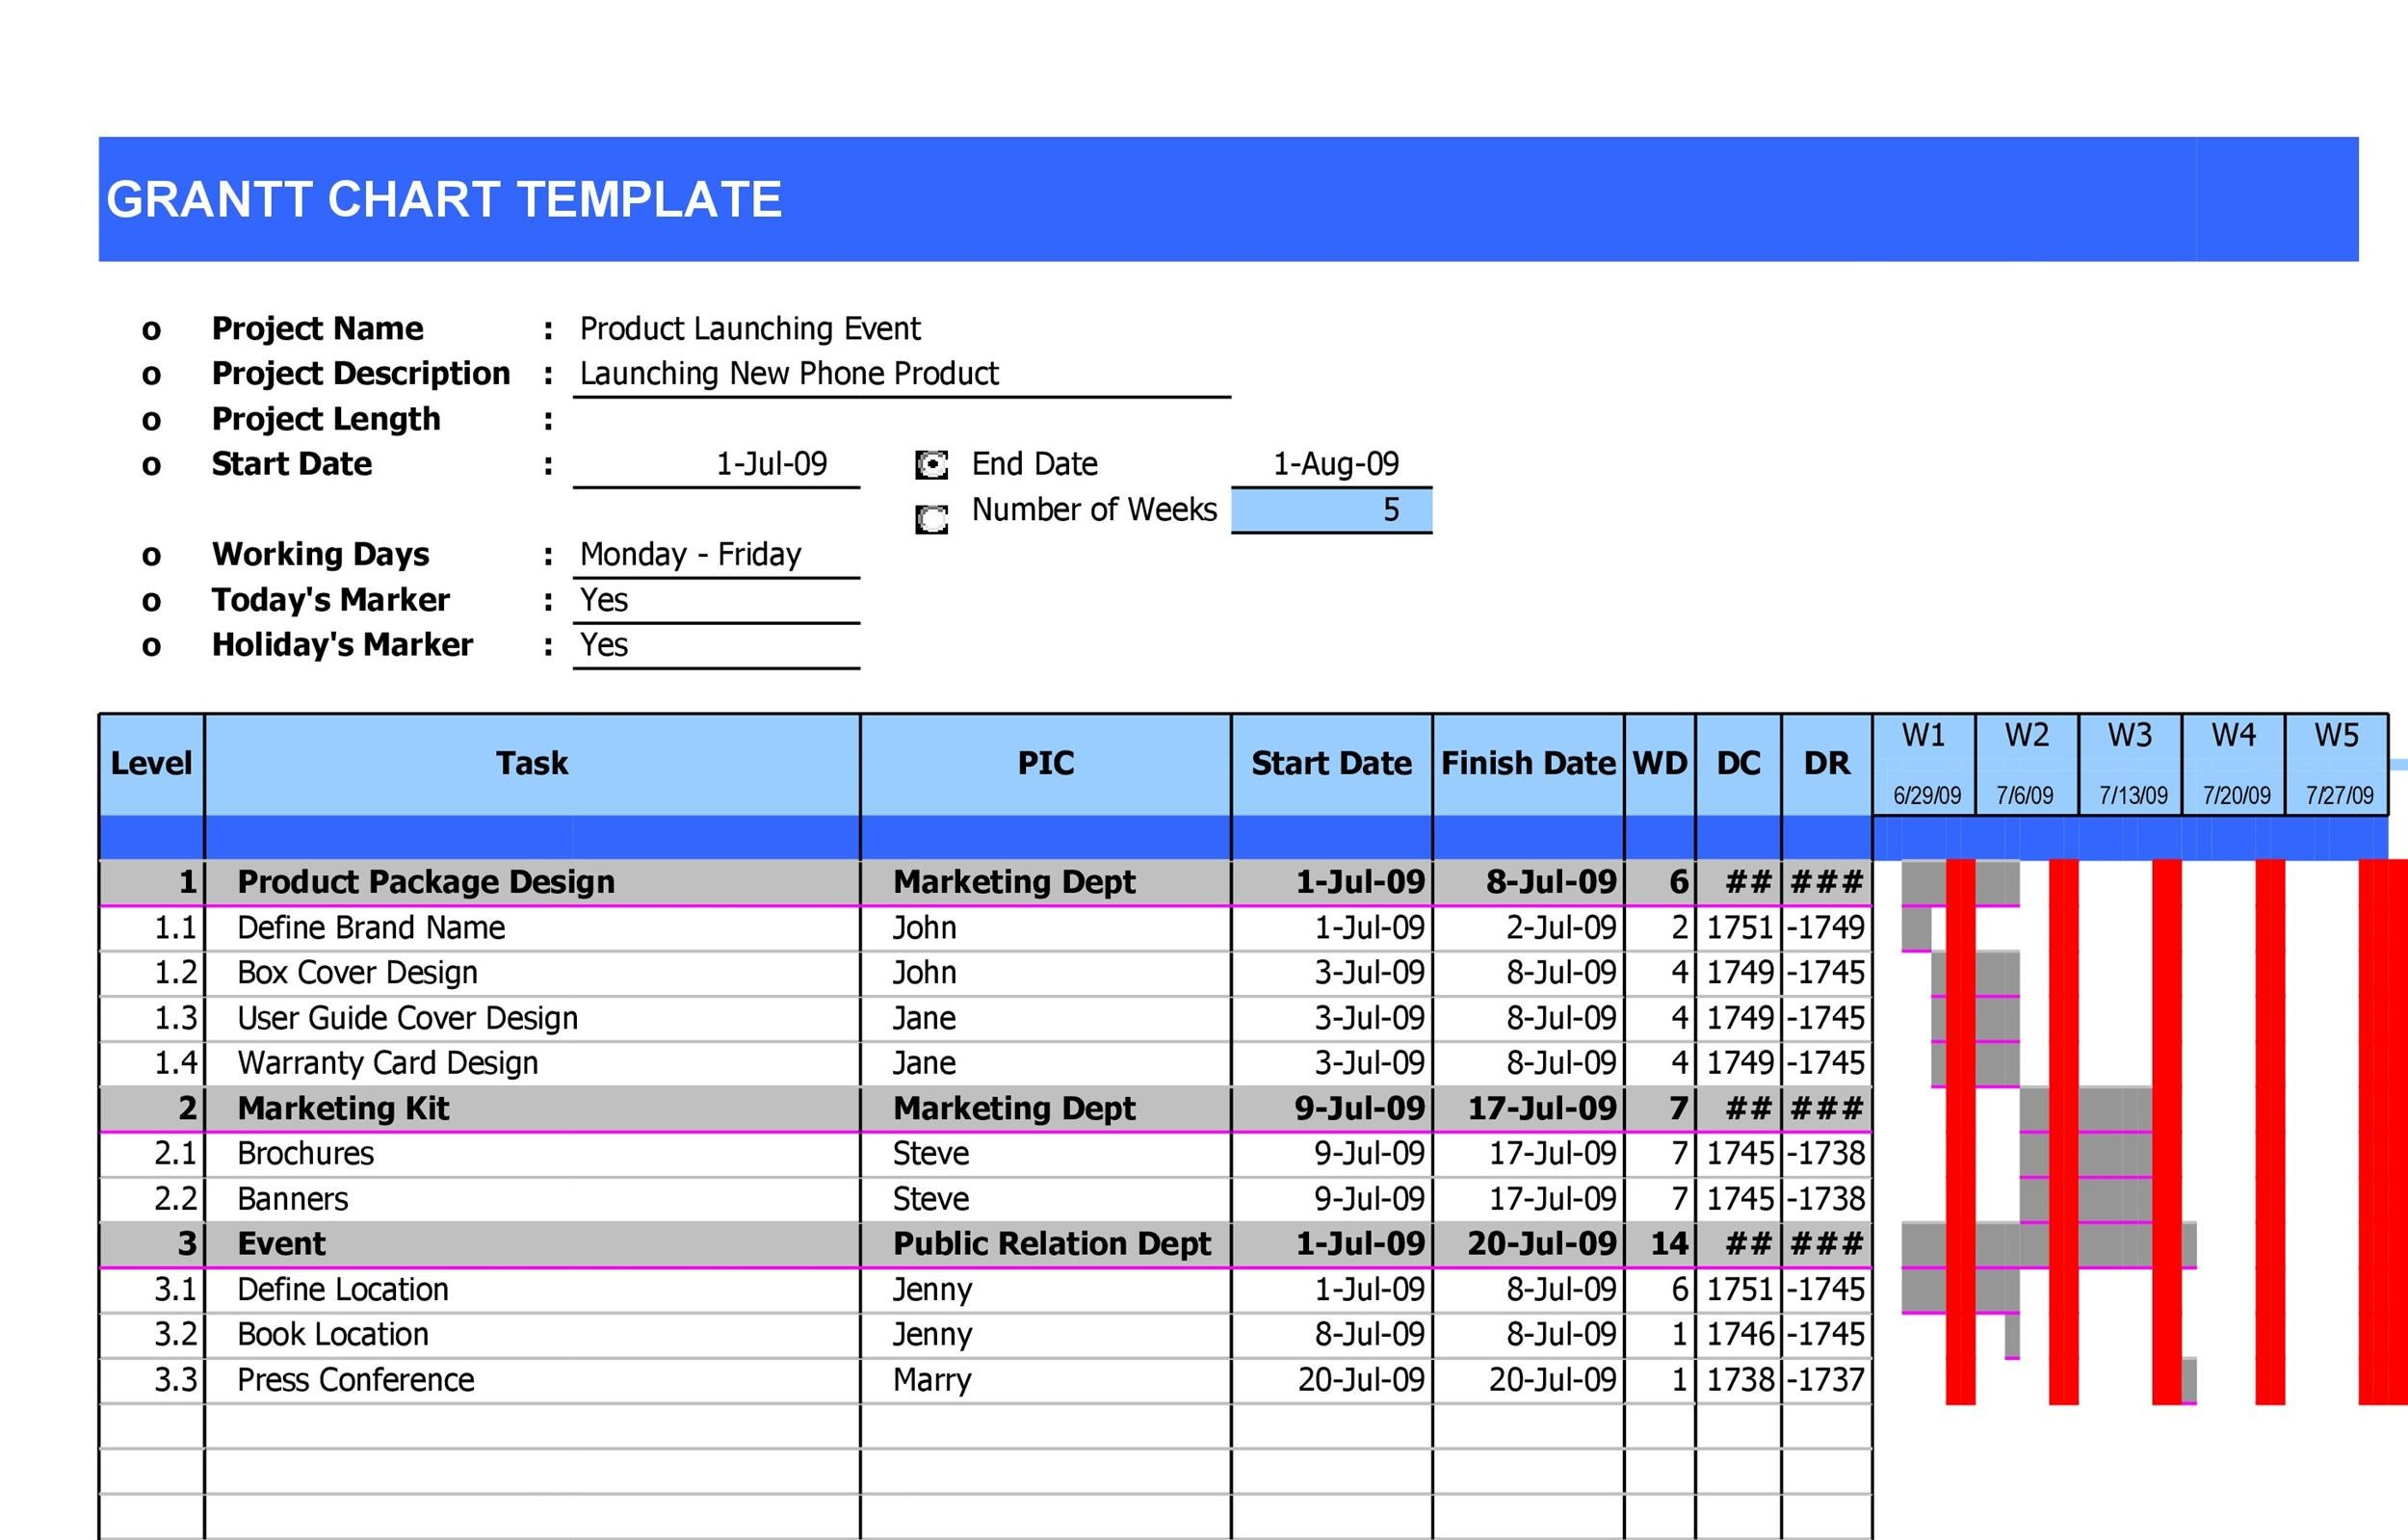 36 free gantt chart templates (excel, powerpoint, word) - template lab, Powerpoint Schedule Template, Powerpoint templates